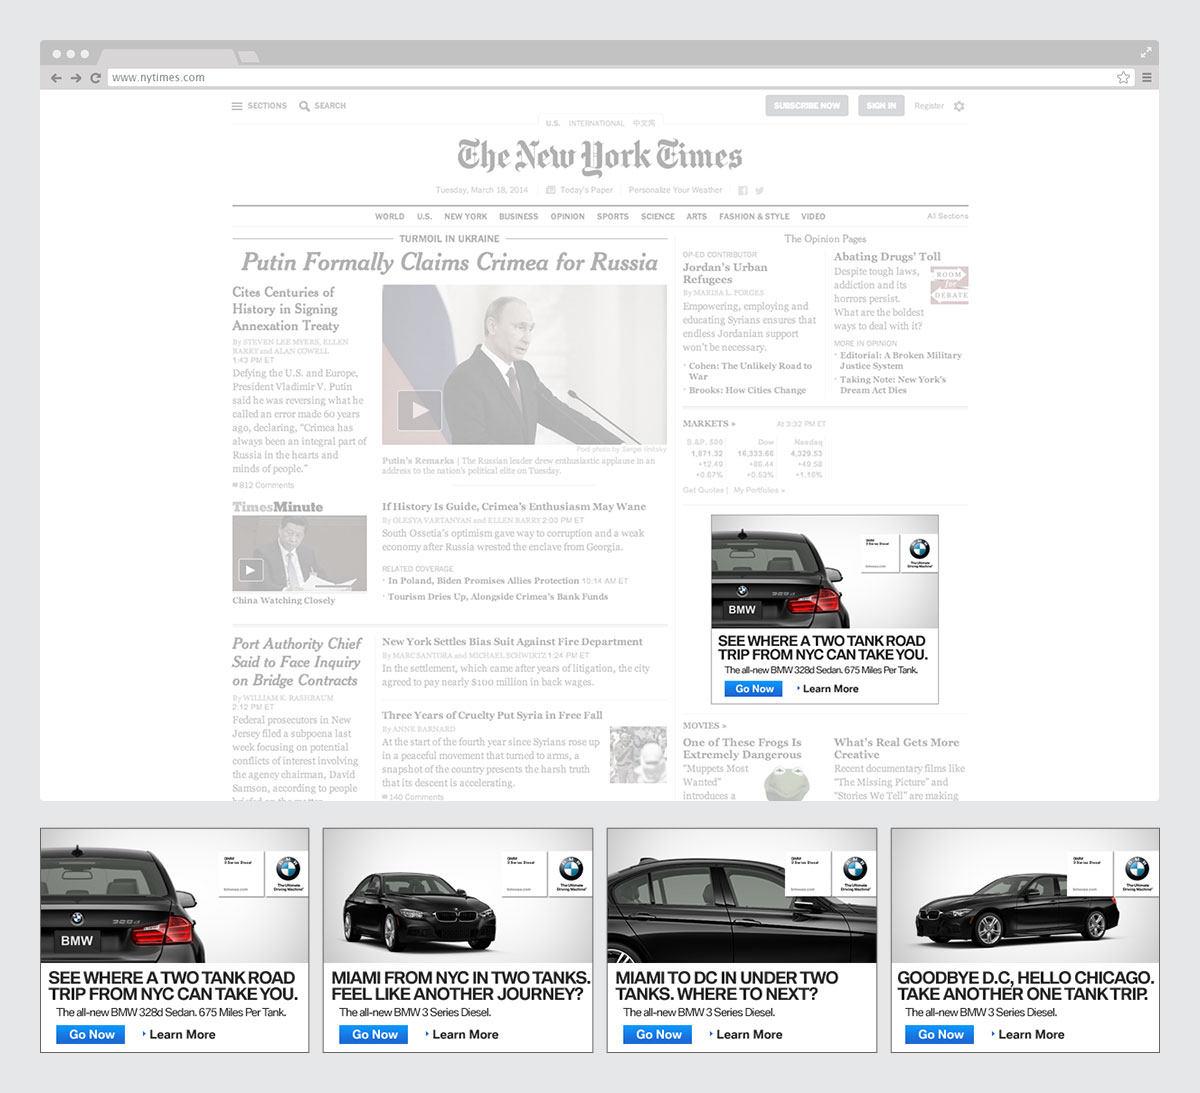 Using the names of well-known newspapers, we created a digital cross-country journey from one news page to the next, one tank at a time.